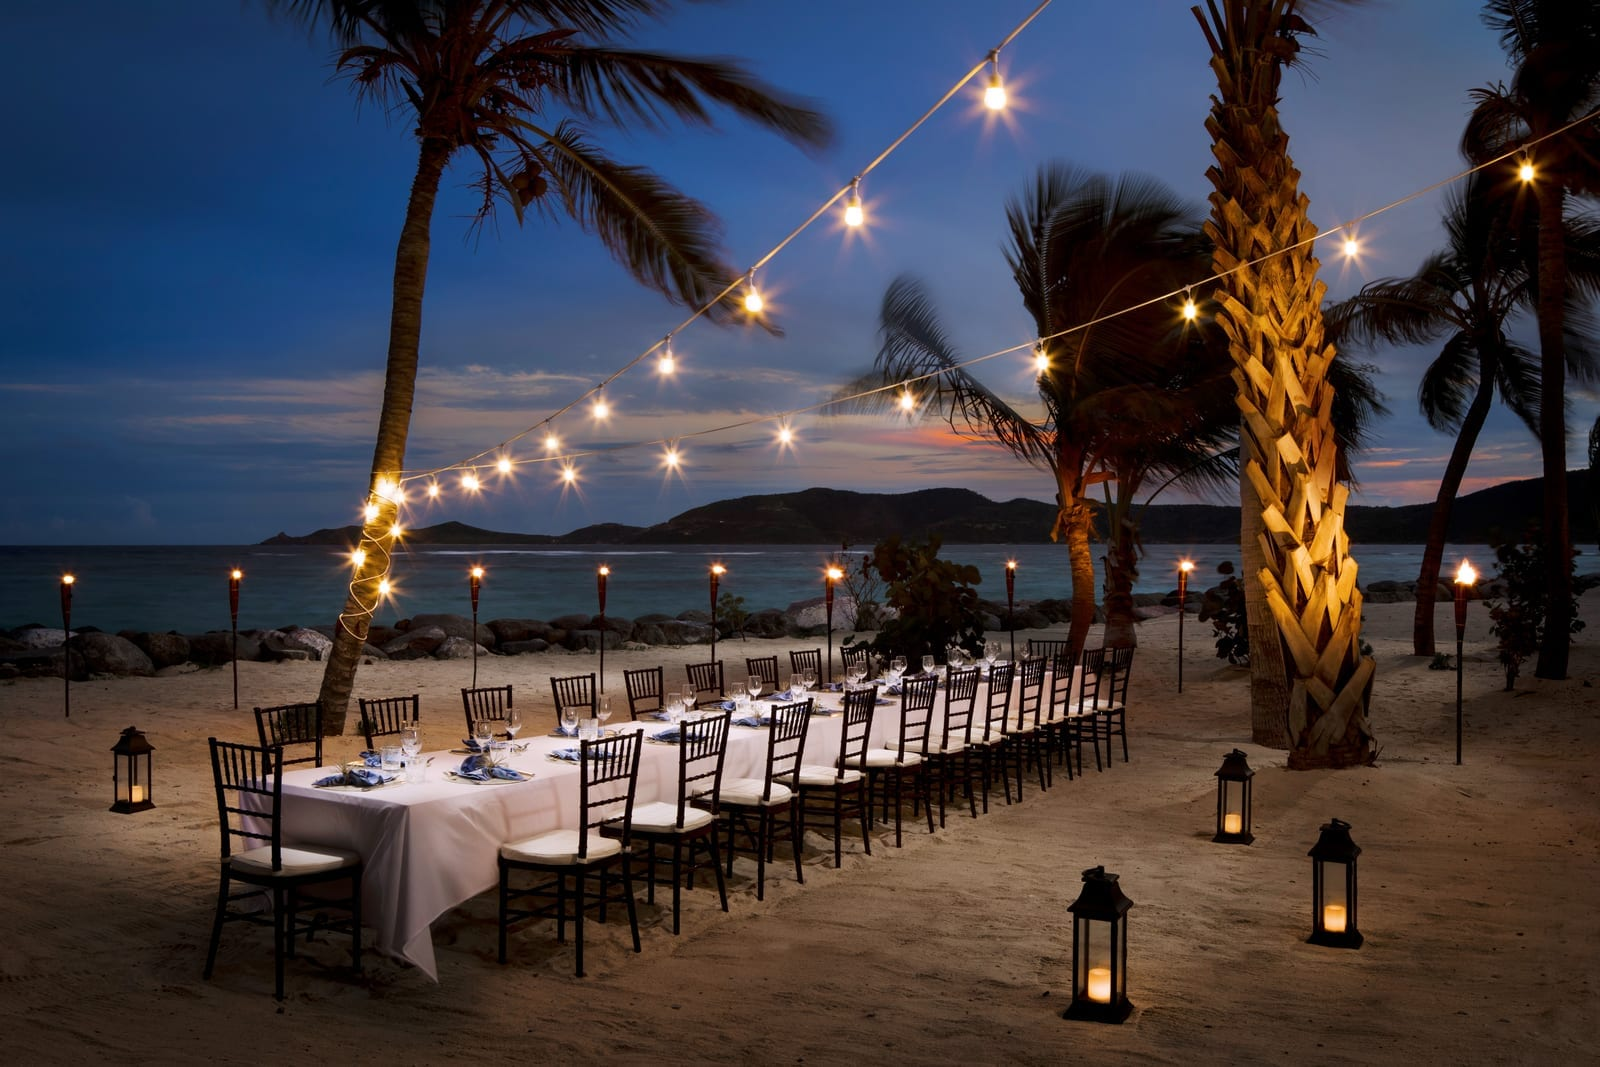 Beach Pavilion Outdoor Dining at Night Necker Island British Virgin Islands